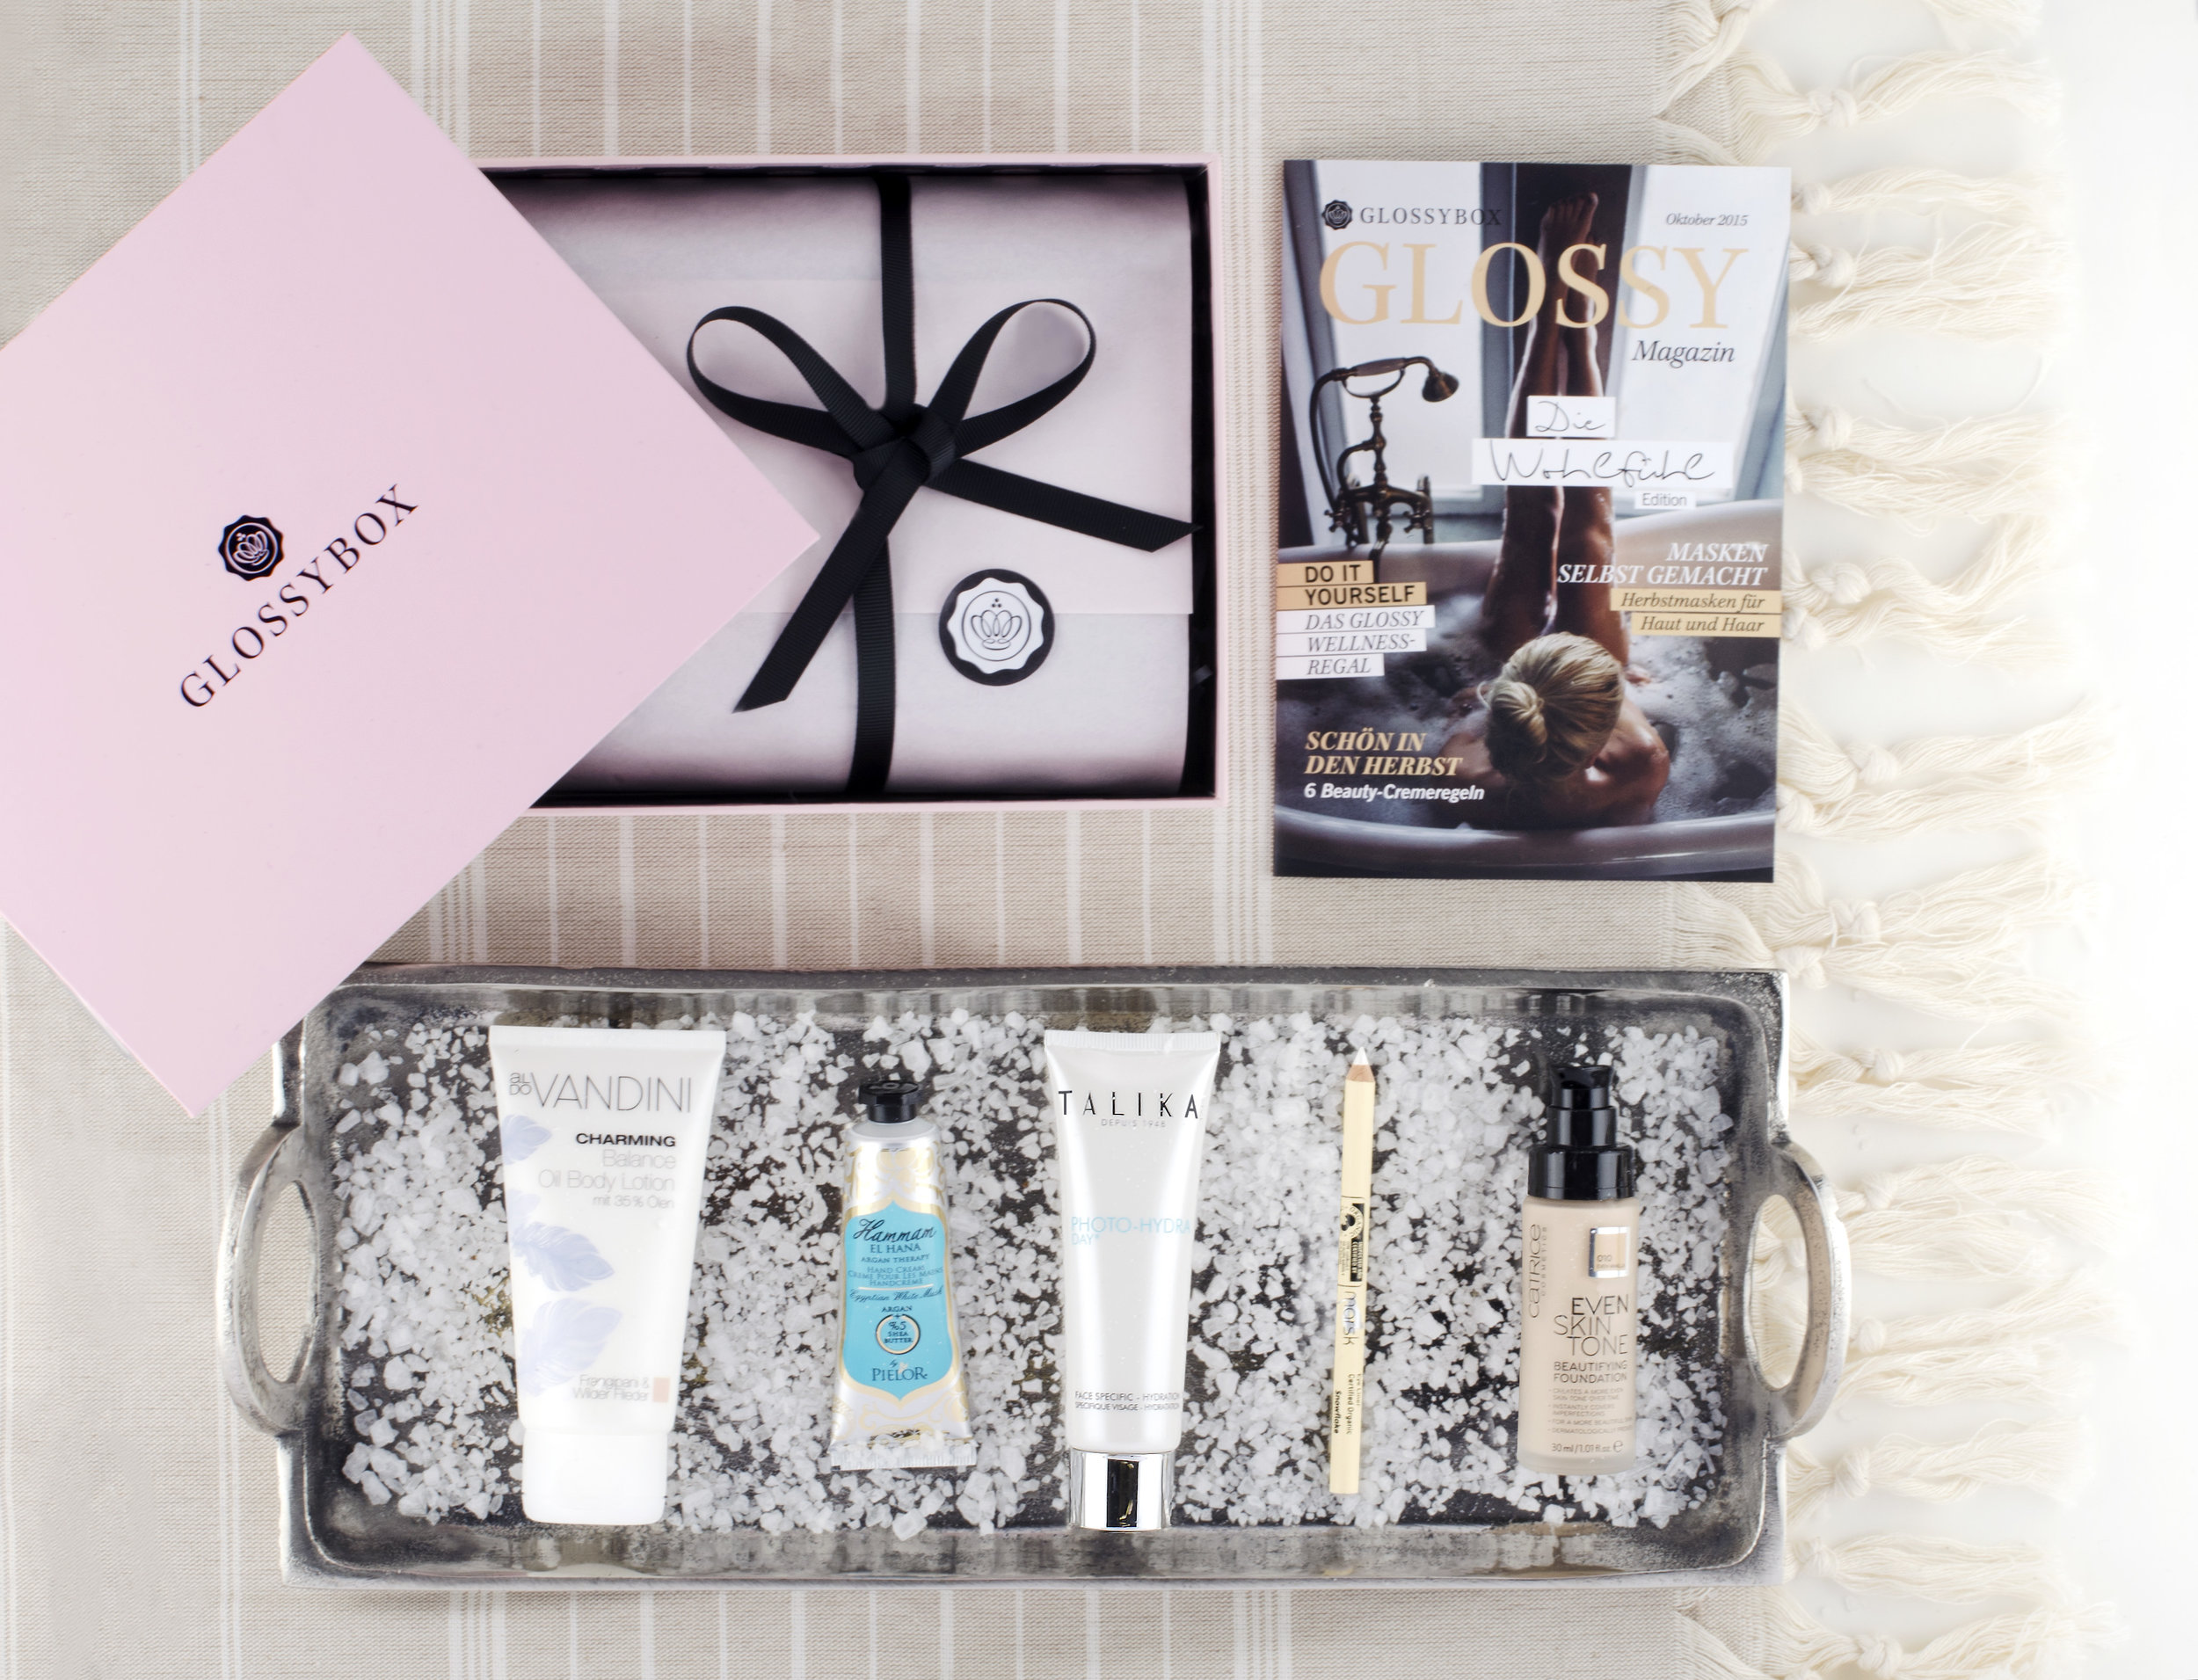 WOHLFÜHL (WELLNESS) EDITION  October 2015, Glossybox Germany